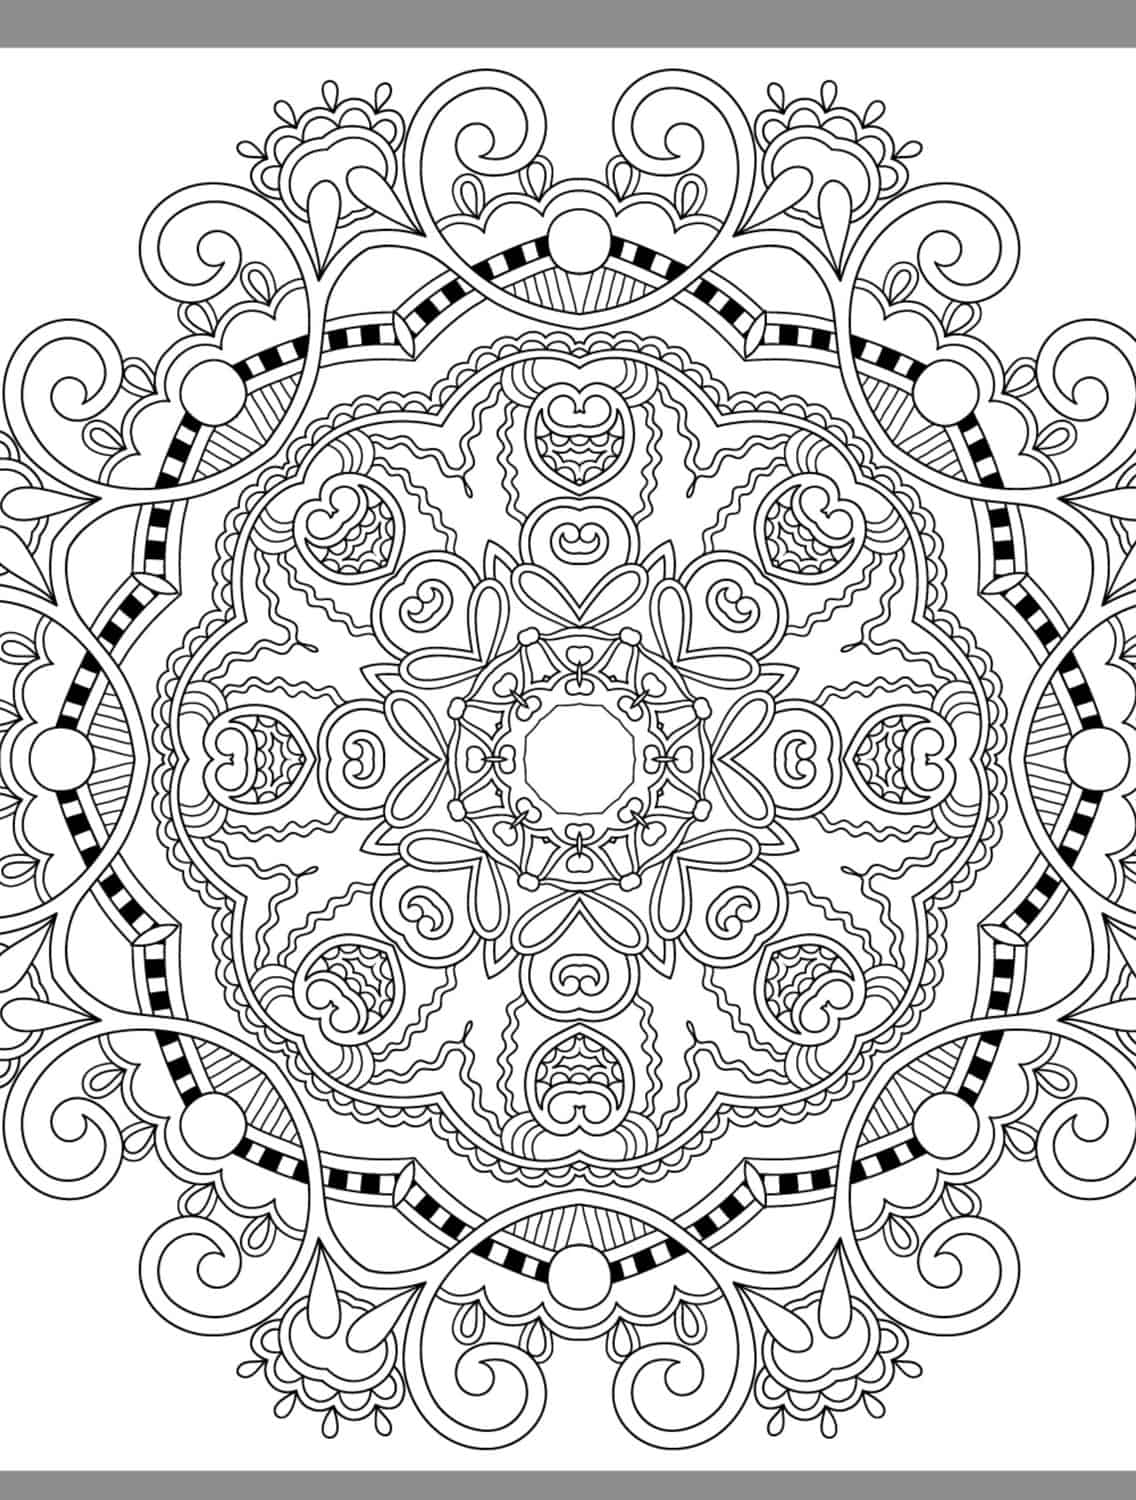 awesome free downloadable coloring pages for adults web - Downloadable Coloring Pages